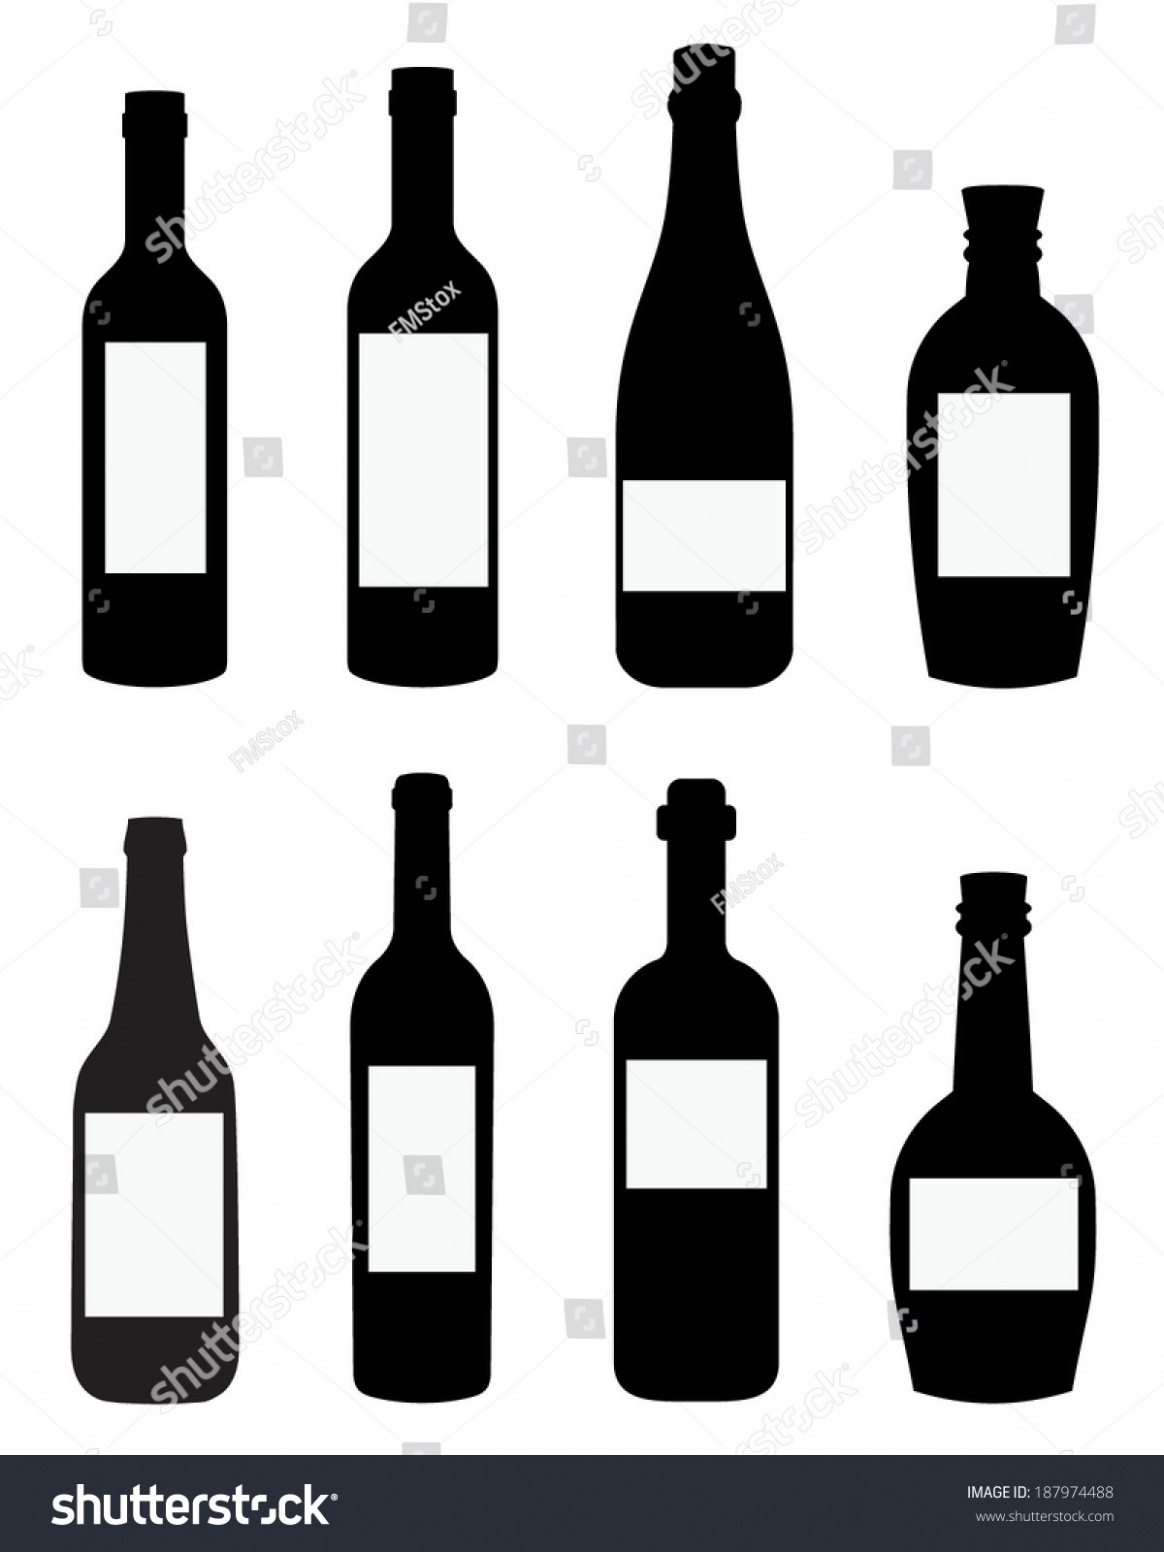 1164x1552 Download Free Vector Liquor Wine Bottle Templates Spot Stock